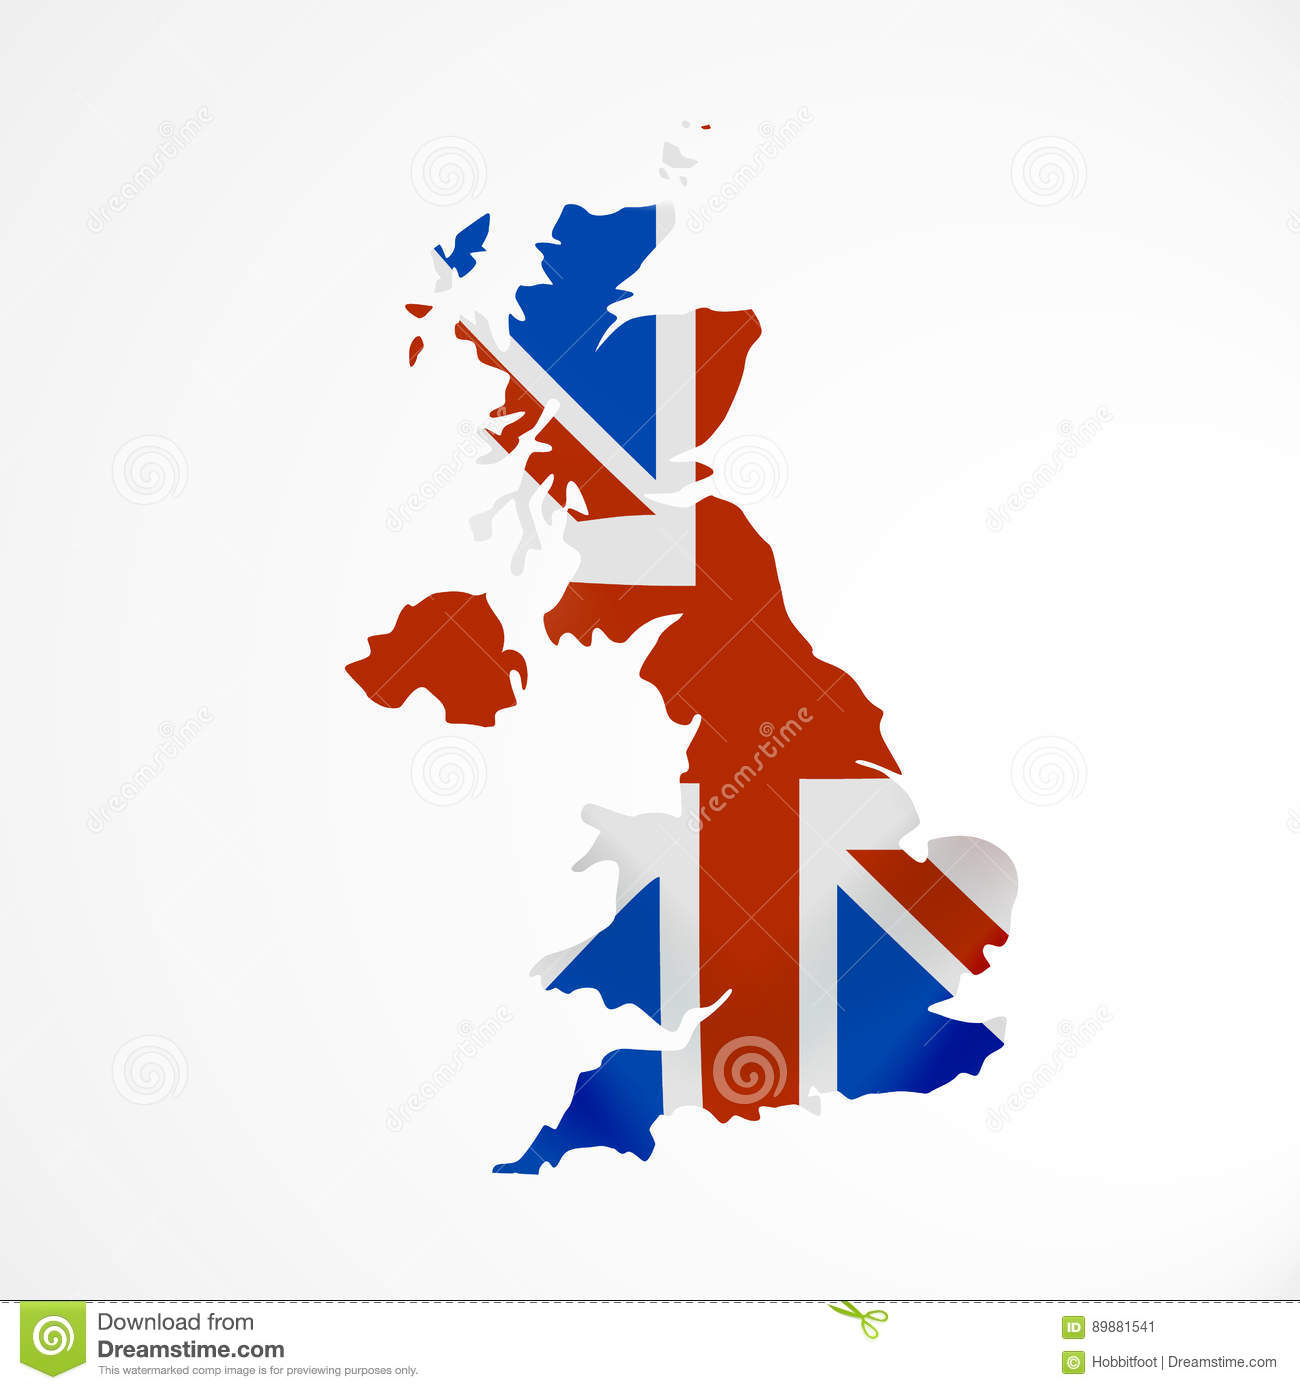 Great Britain Flag In Form Of Map. United Kingdom Of Great Britain on mercia map, france map, england map, ireland map, british america map, scotland map, serbia and montenegro map, roman empire map, great britain on a map, united kingdom map, spain map, french revolutionary wars map,